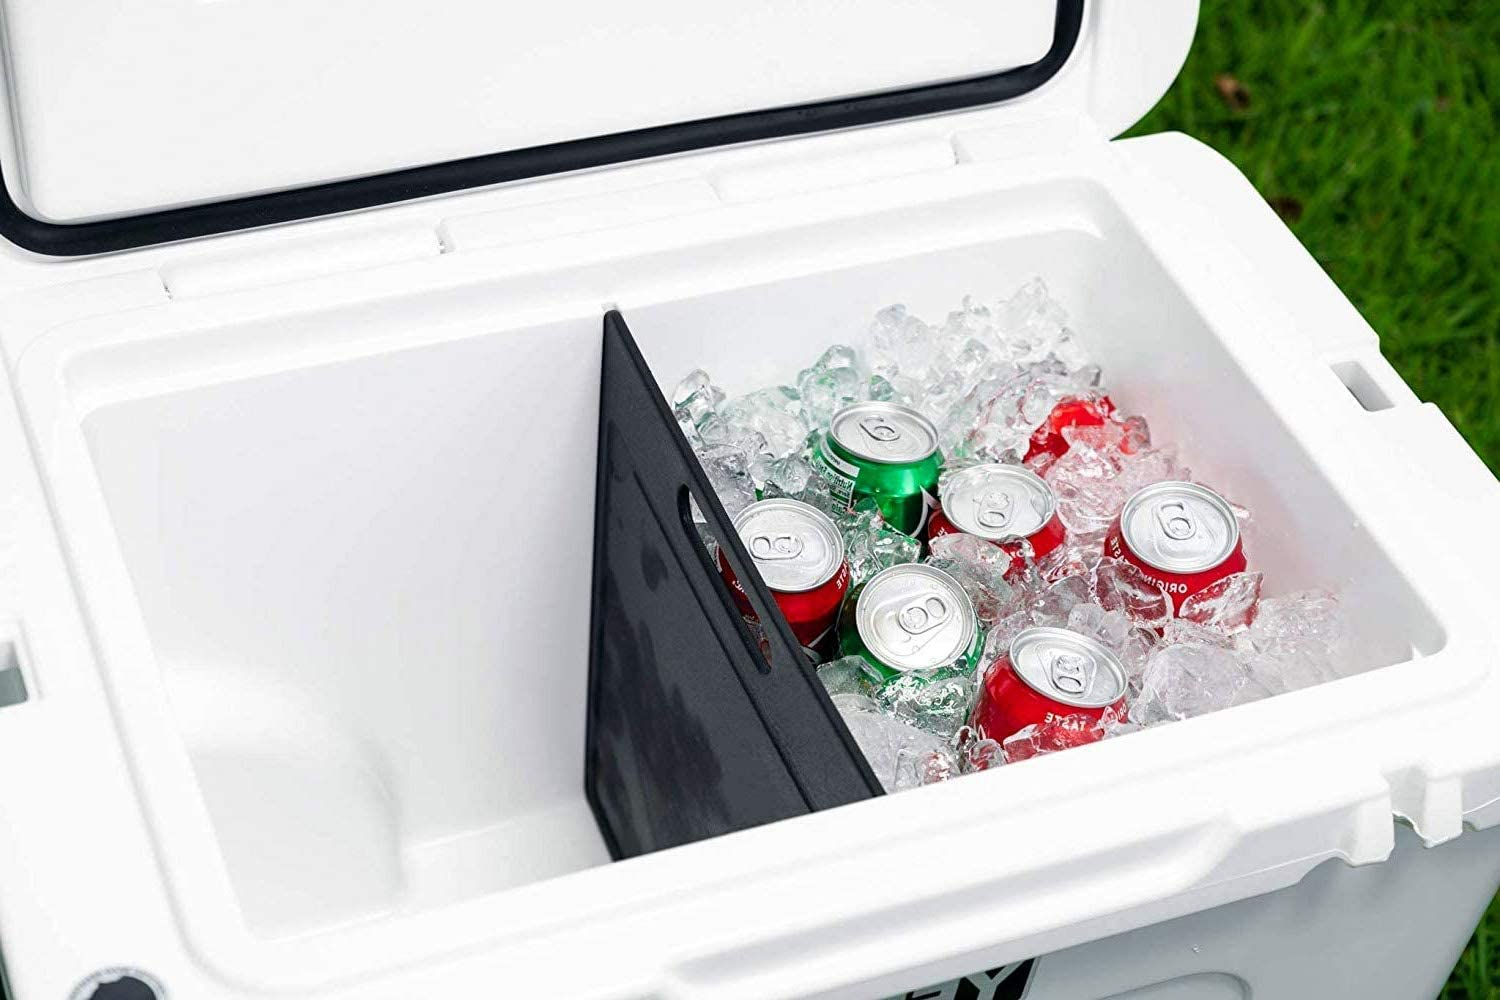 Yeti 105 & 125 Cooler Divider & Cutting Board - Improved Design That is Specifically Designed to Only Fit The Yeti Tundra 105 and Yeti Tundra 125 Coolers